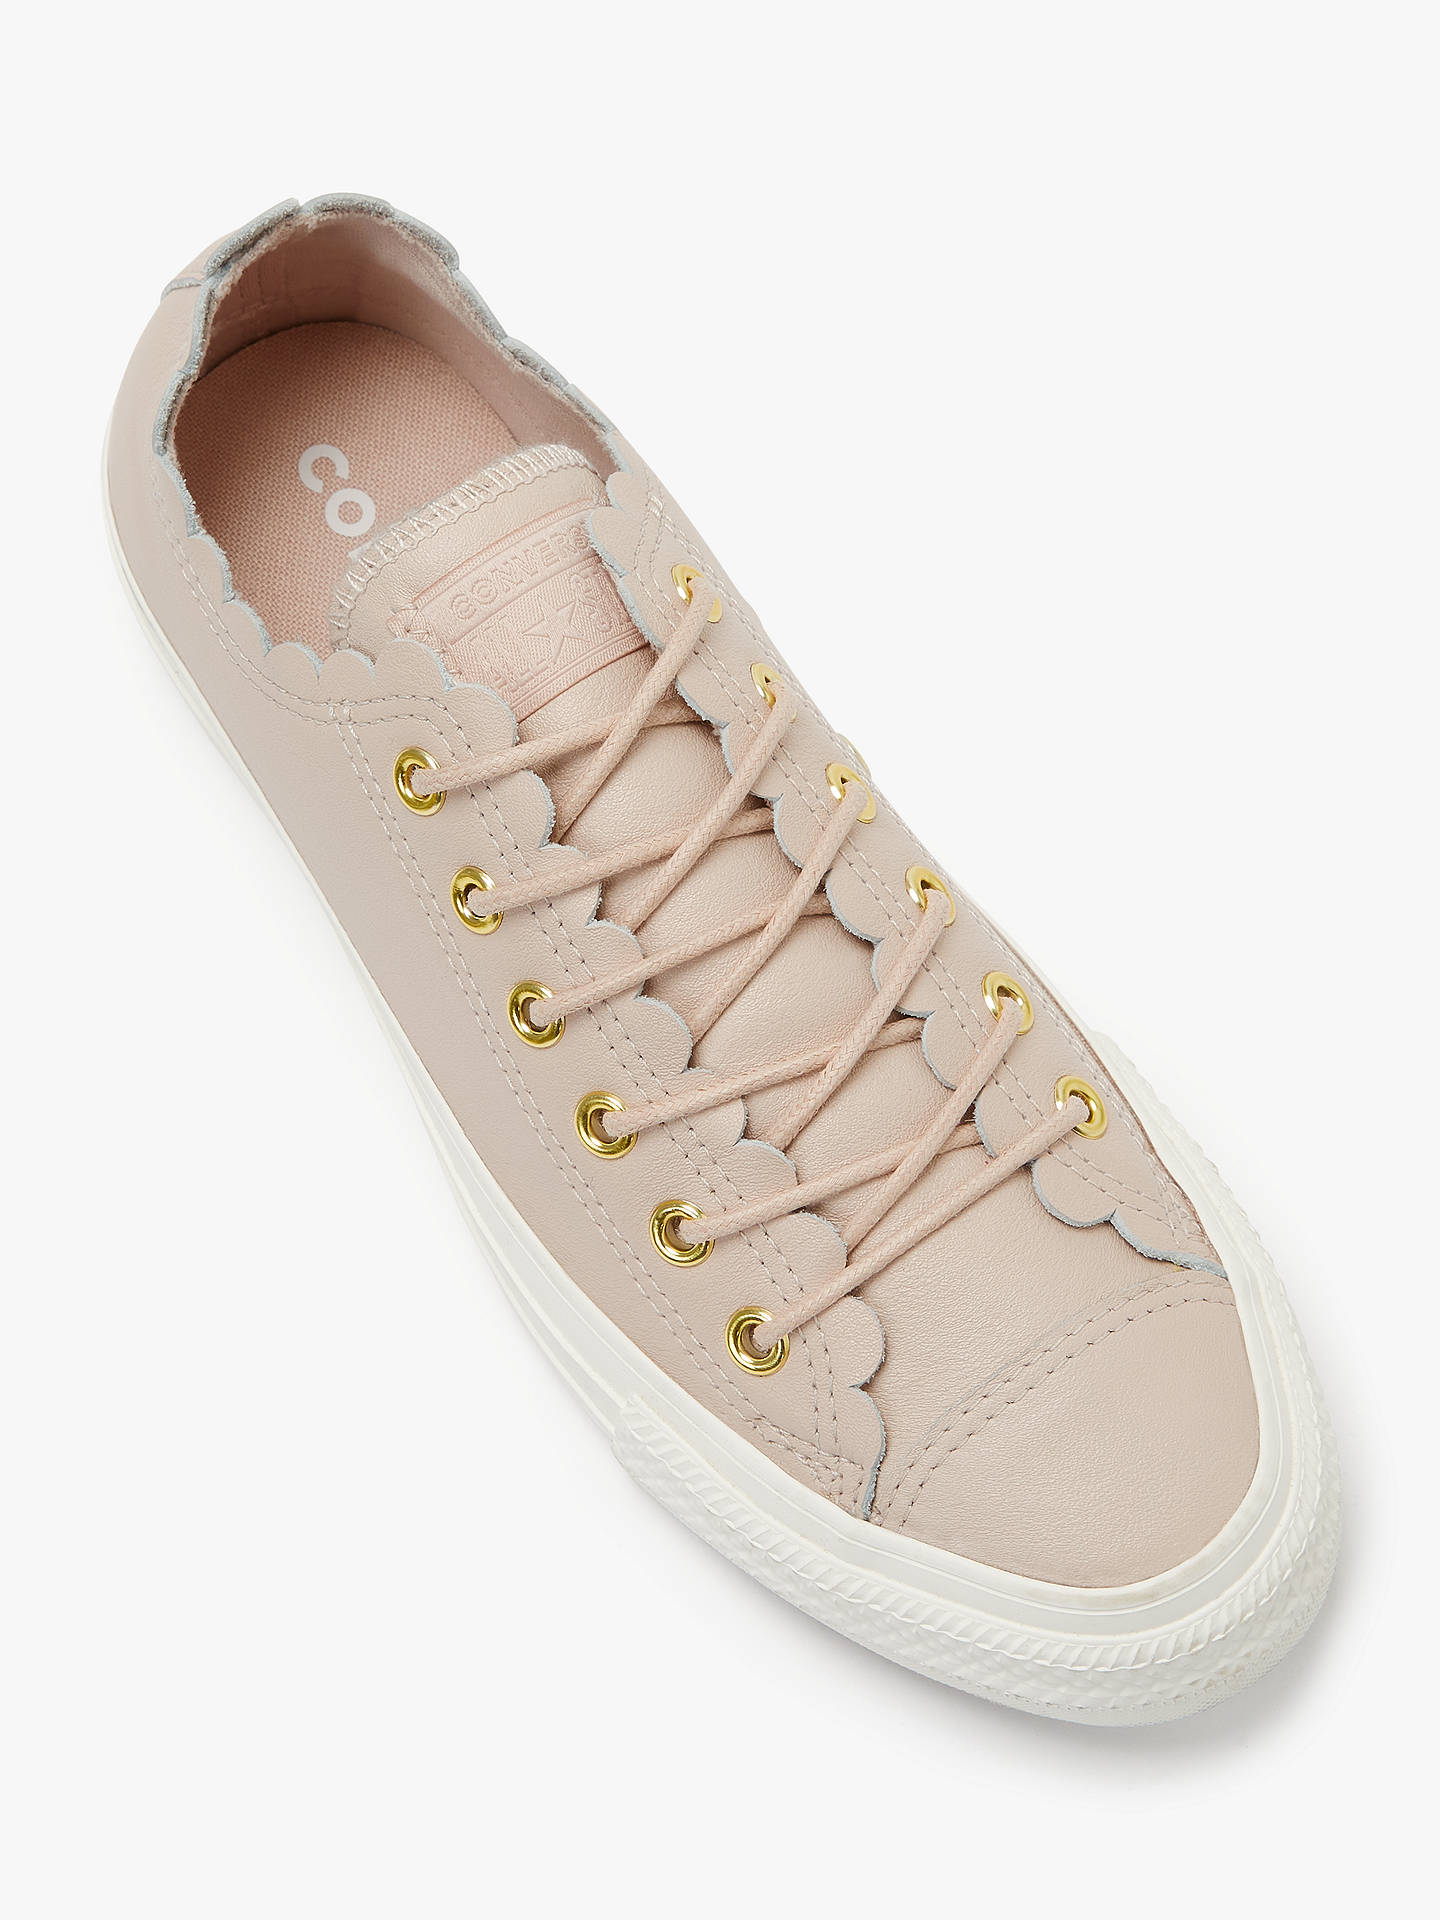 c6ee66016daa Converse Women s Chuck Taylor Scalloped Trainers at John Lewis ...